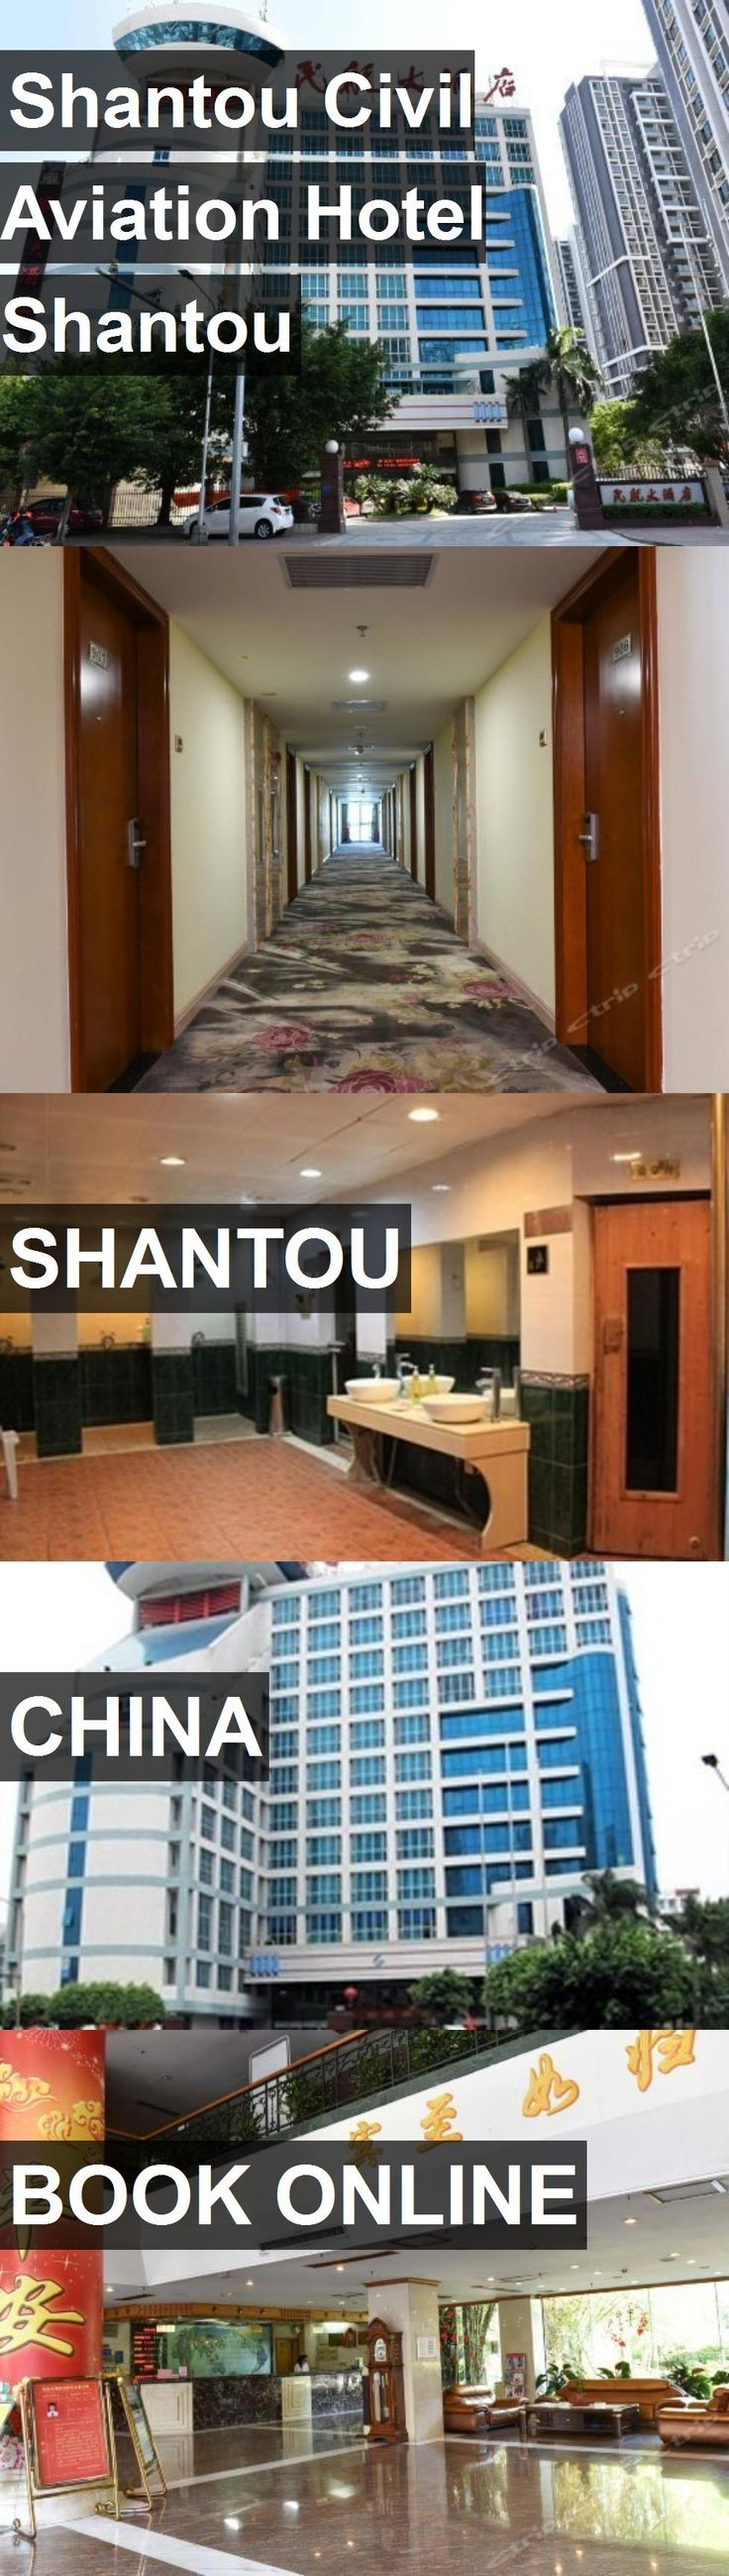 Shantou Civil Aviation Hotel Shantou in Shantou, China. For more information, photos, reviews and best prices please follow the link. #China #Shantou #travel #vacation #hotel